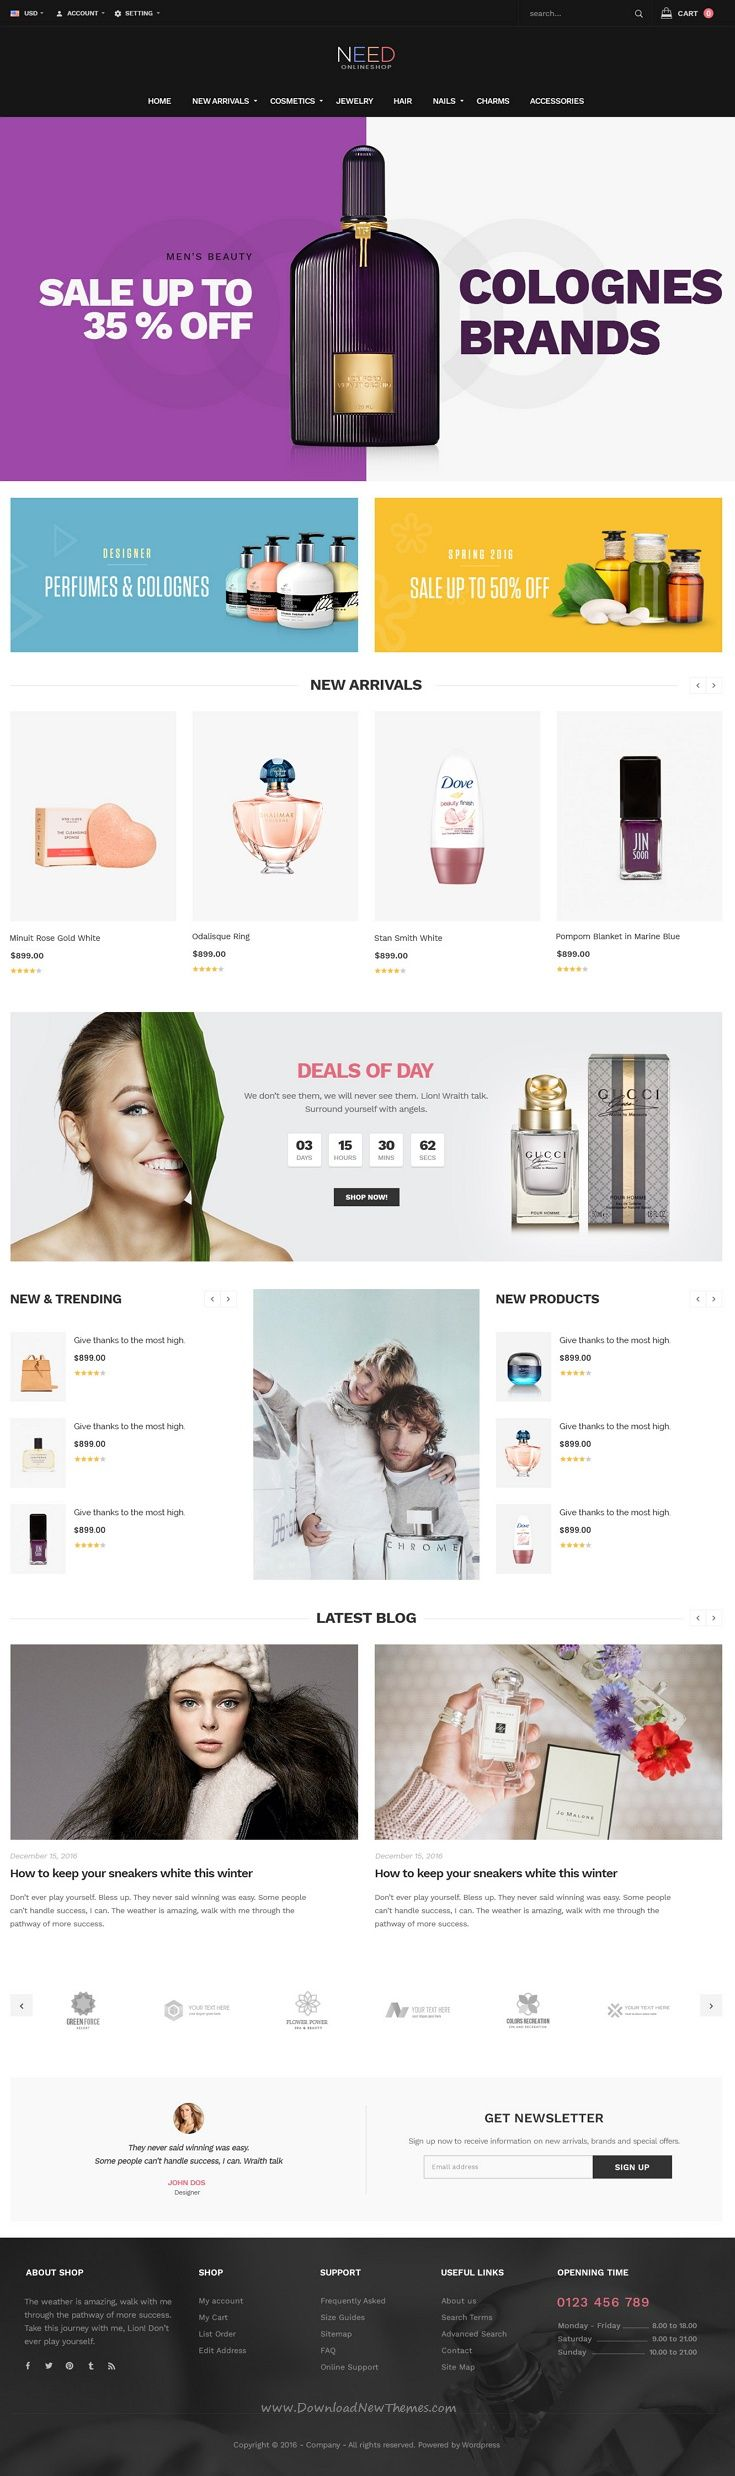 NeedShop is Responsive Flexible #Shopify Theme. It is an ideal theme designed for any kinds of shop such as Fashion, Cosmetics, Jewelry, #Nails, Perfume, Glasses..ect #webdesign